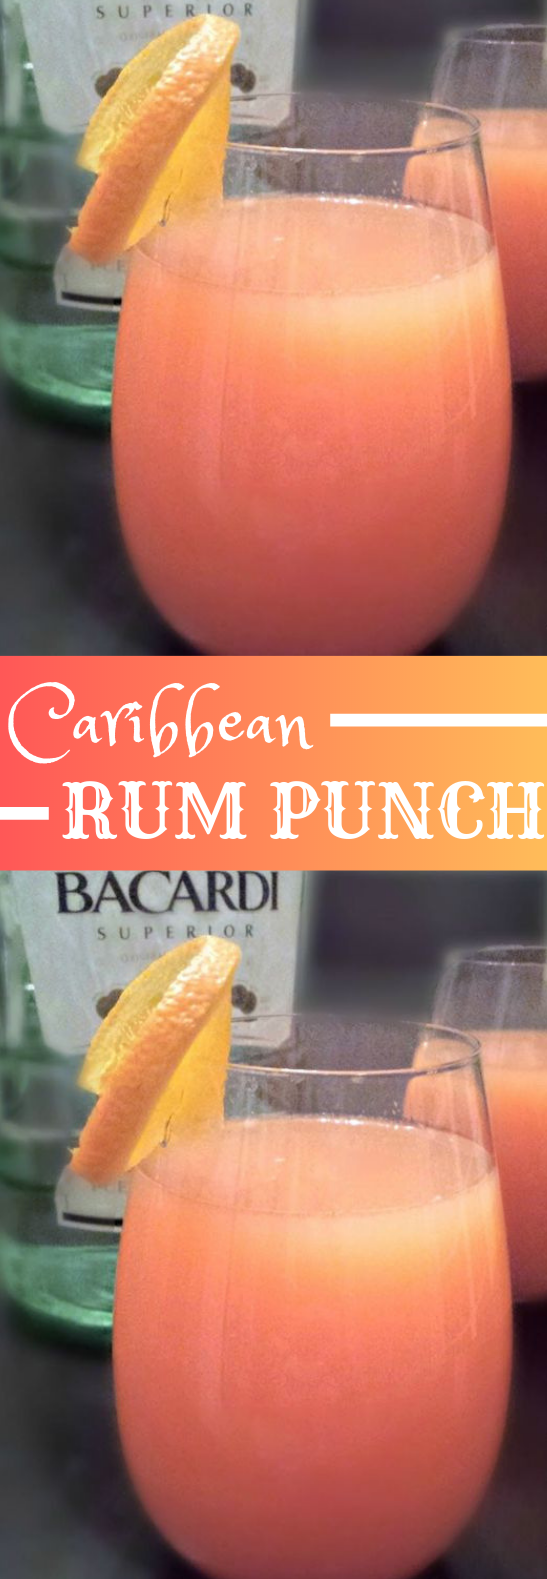 #ThurstyThursday: Rum Punch #Drinks #carribean